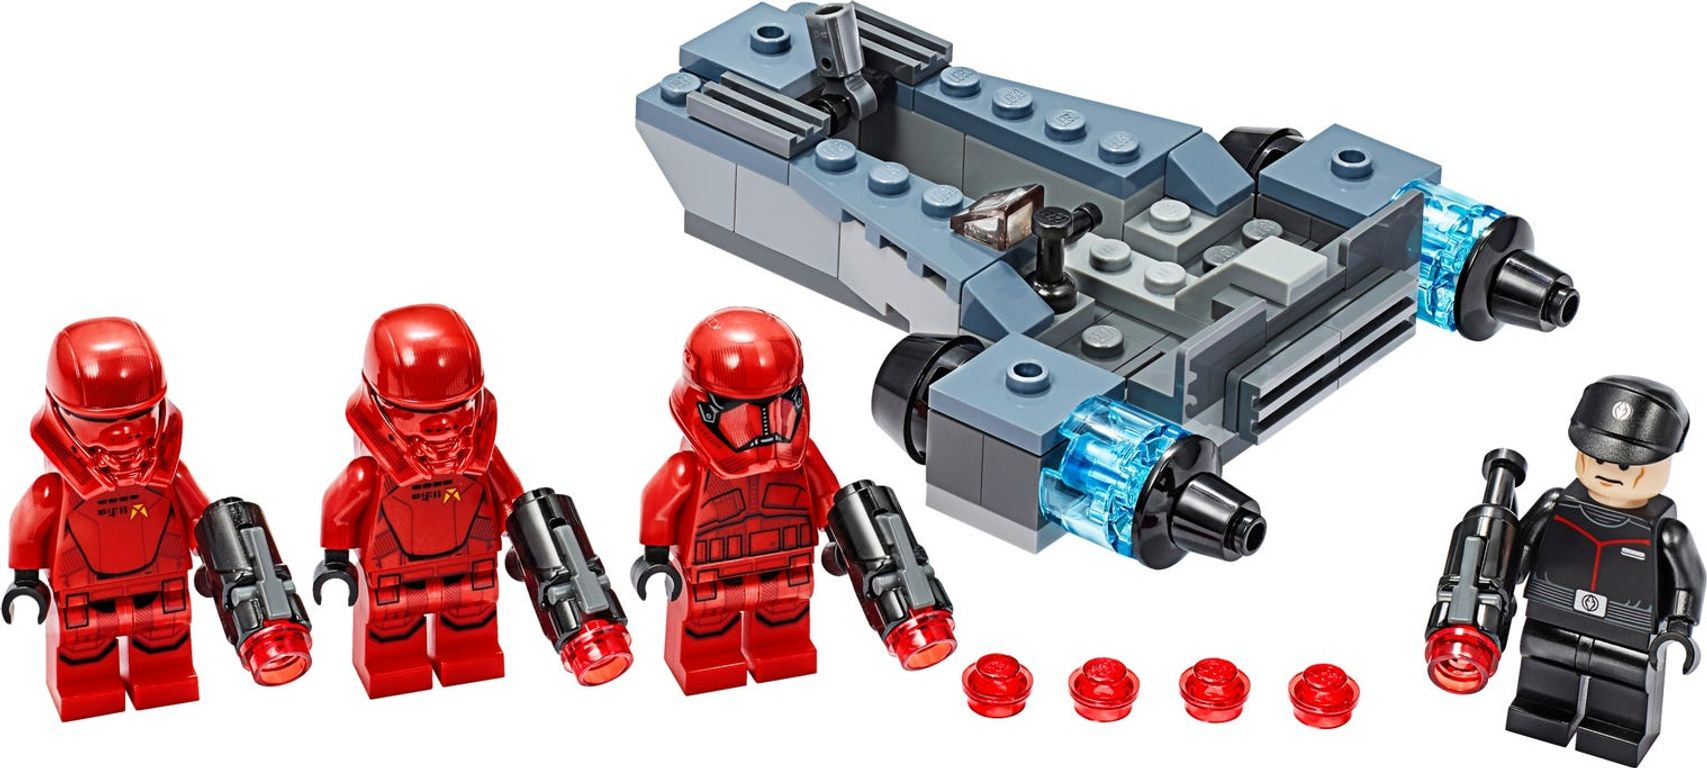 LEGO® Star Wars Sith Troopers™ Battle Pack components